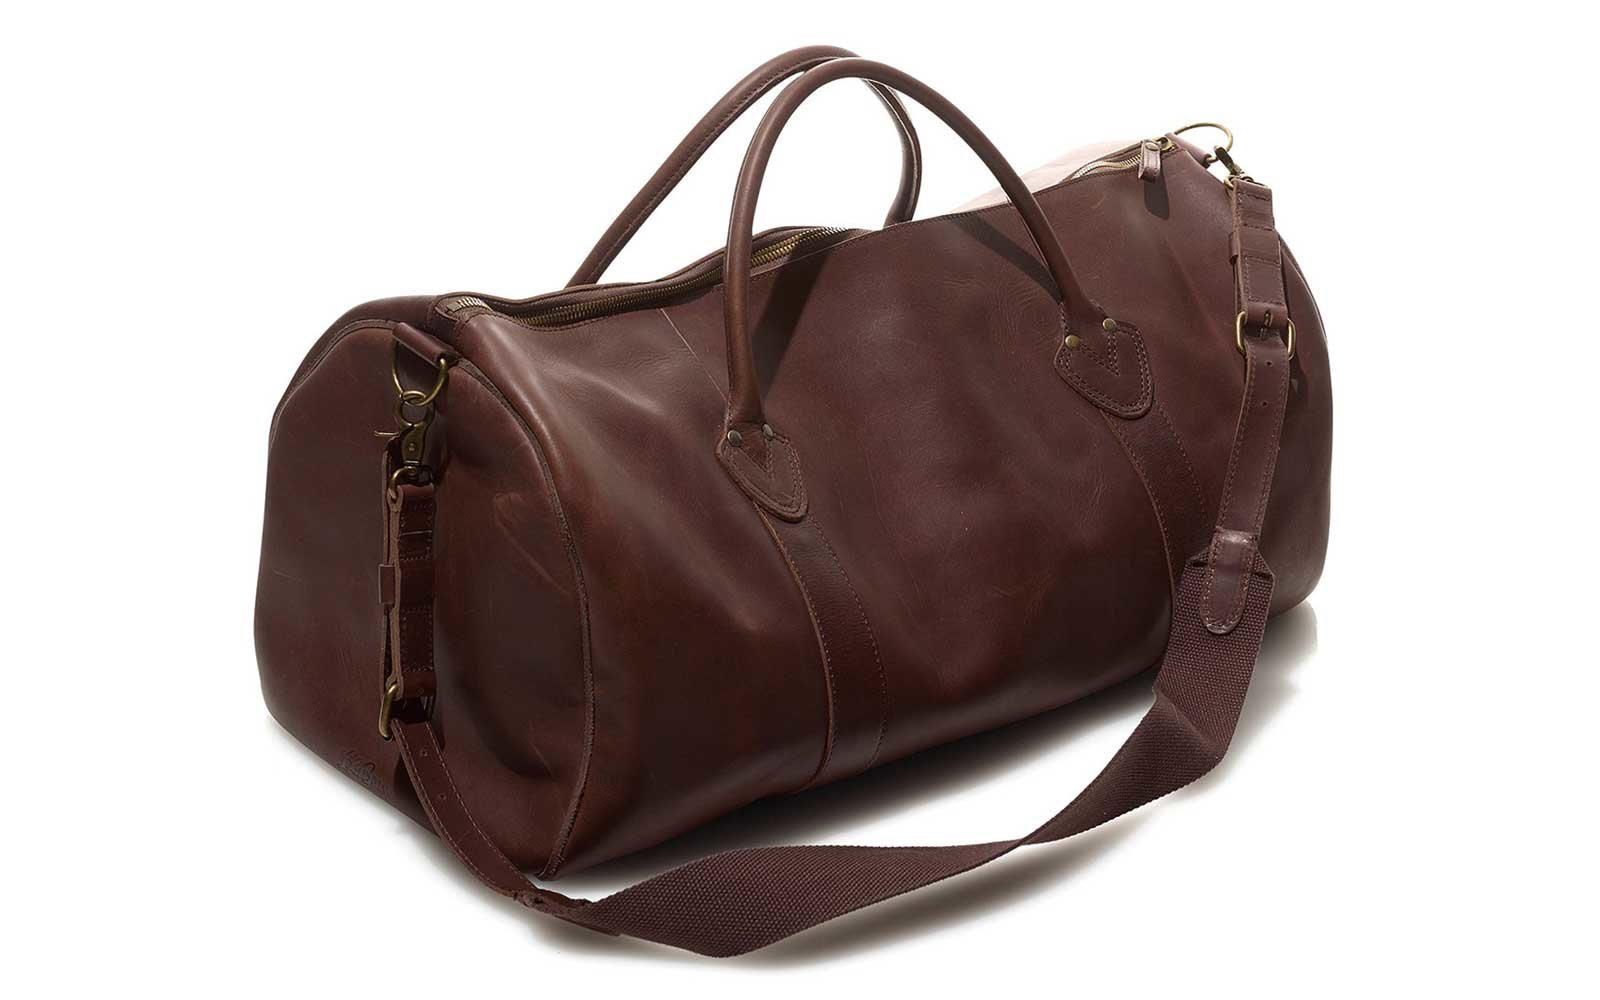 7b8e4fcfe88a The Best Leather Duffel Bags | Travel + Leisure